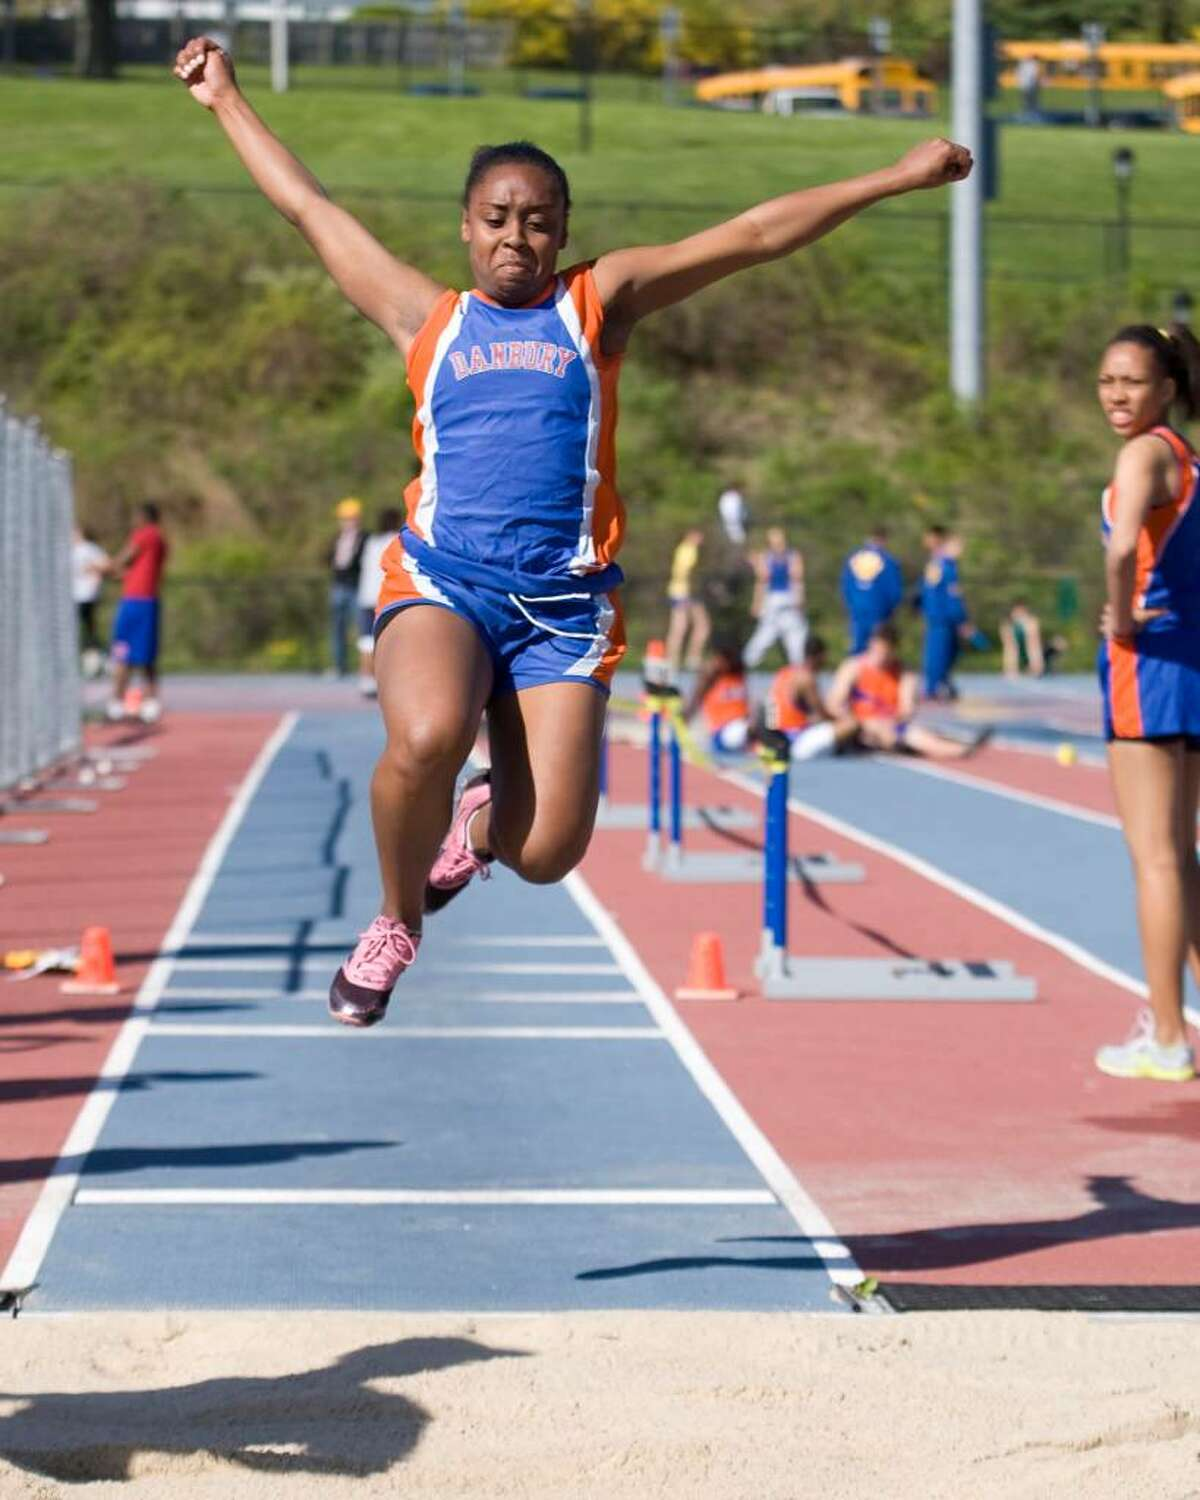 Danbury's Destiny Smith triple jumps during competition at the O'Grady Relays Saturday at Danbury High.